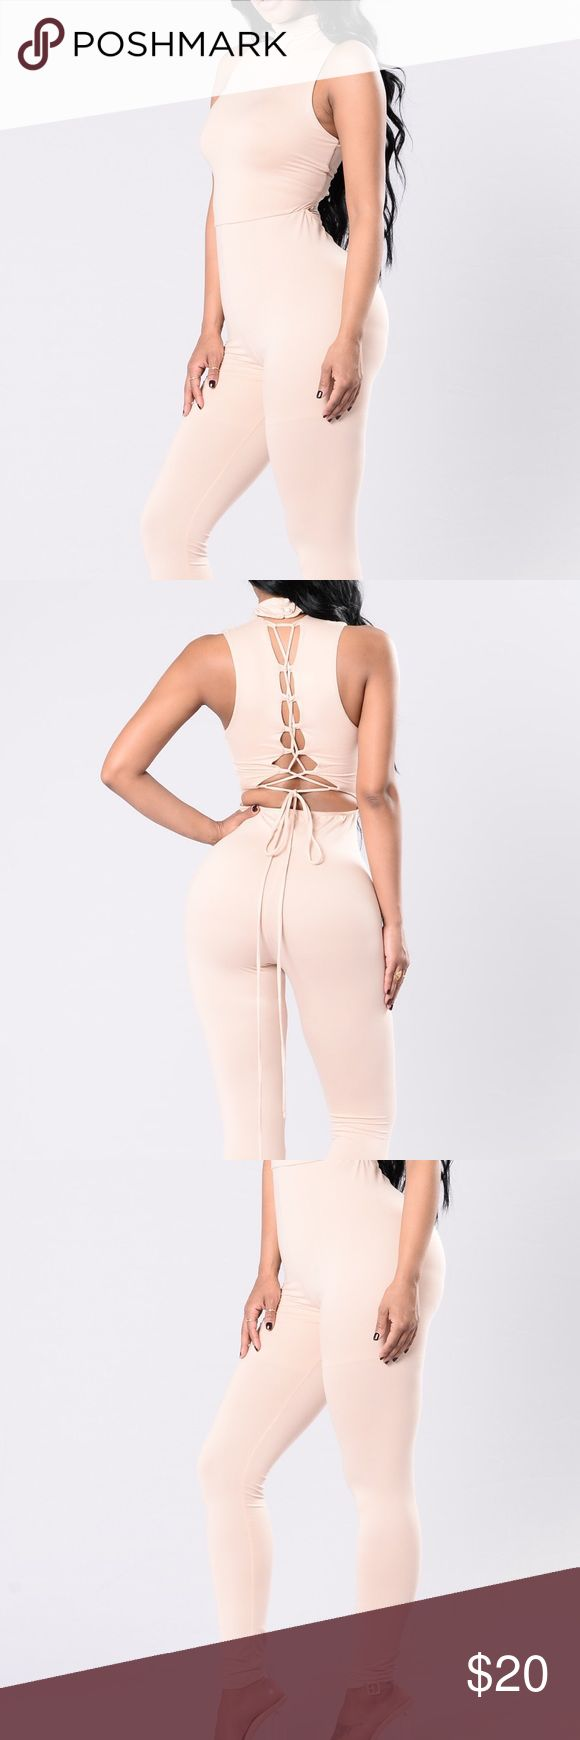 Nude jumpsuit Never worn. Tie detail in the back, size large. Fashion Nova Pants Jumpsuits & Rompers